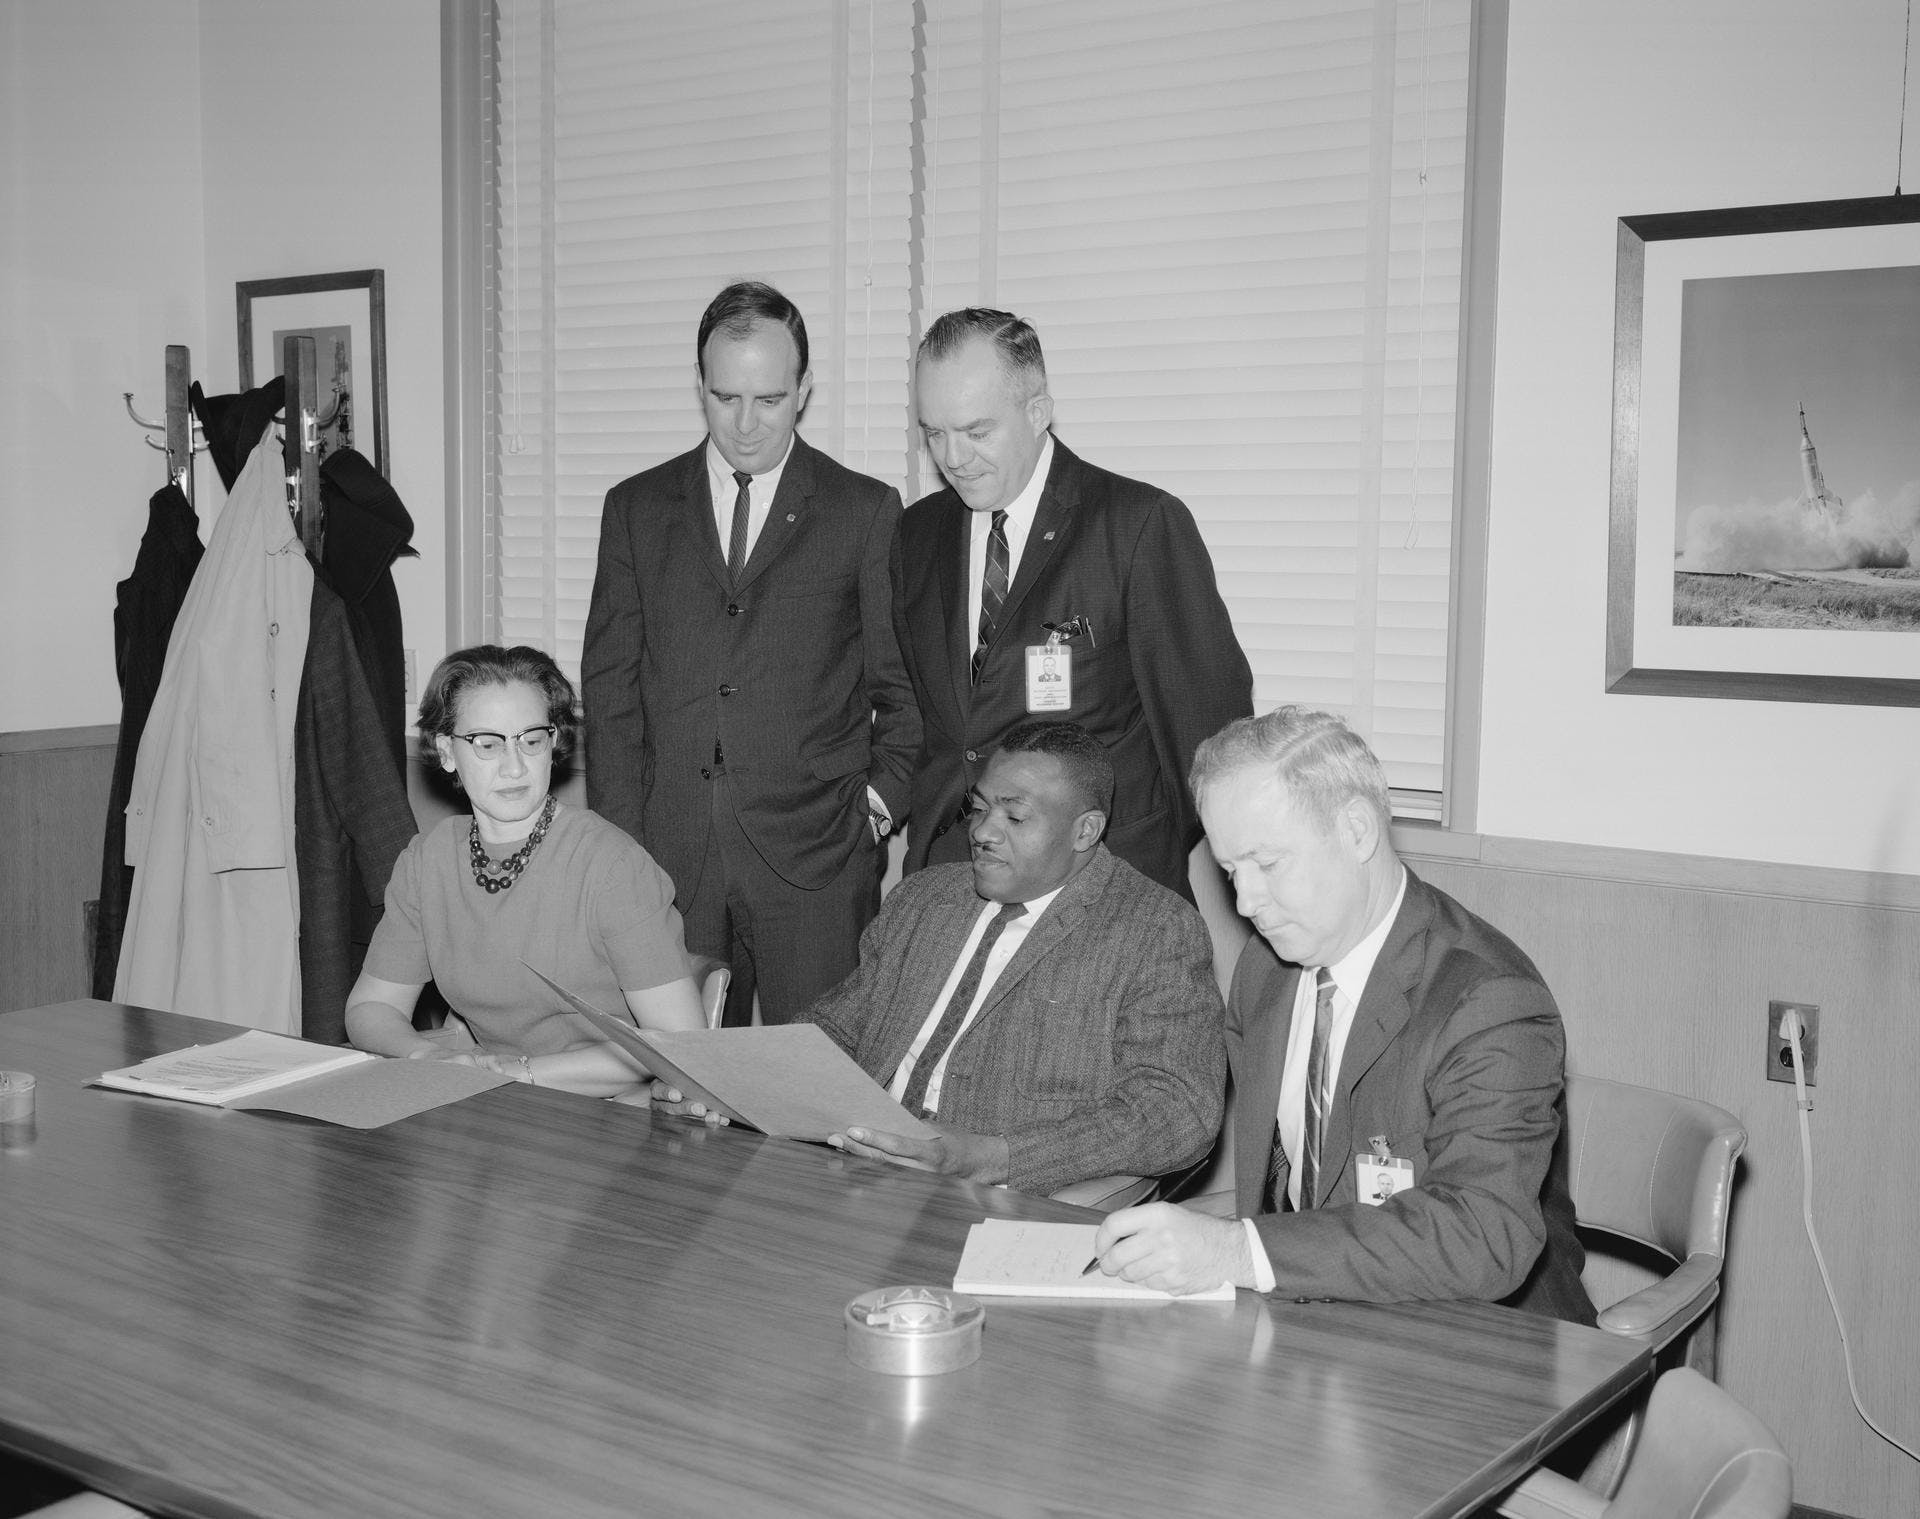 Seated from From Left: Katherine G Johnson, Lawrence W Brown, and J Norwood Evans, Employment Officer. Standing from Left: John J Cox, secretary; and Edward T Maher